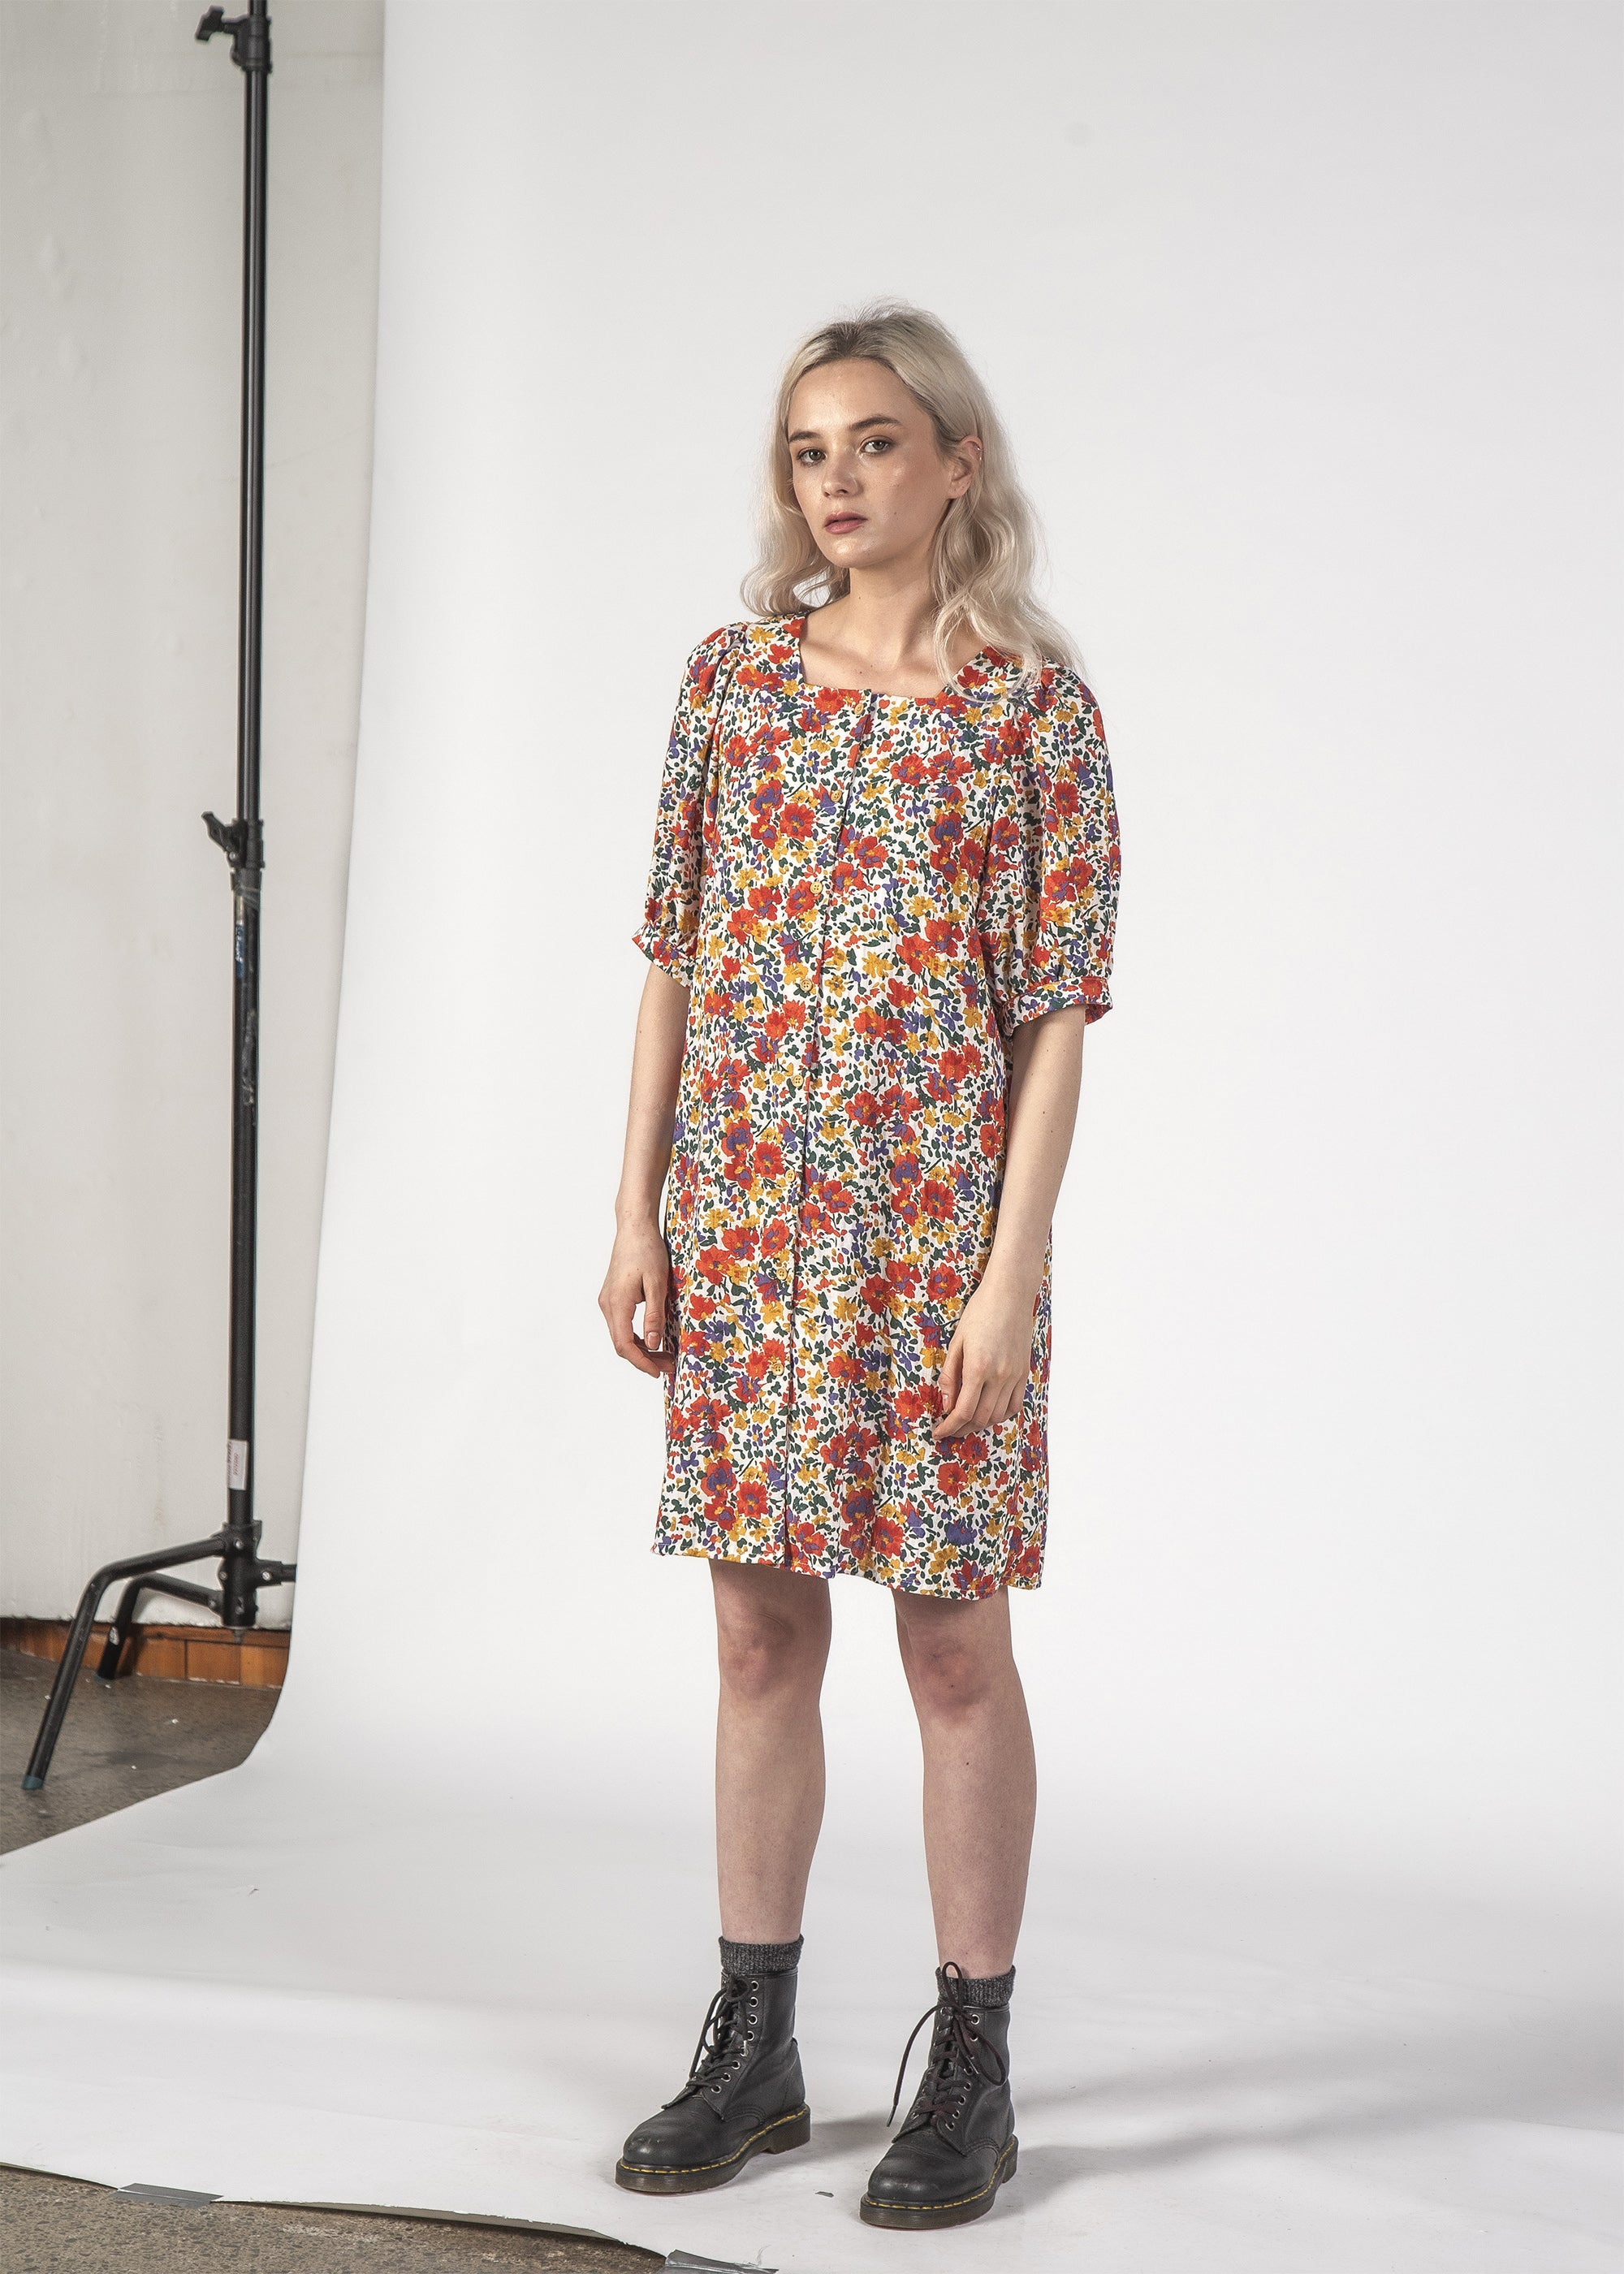 SMALL TALK DRESS - INKY FLORAL